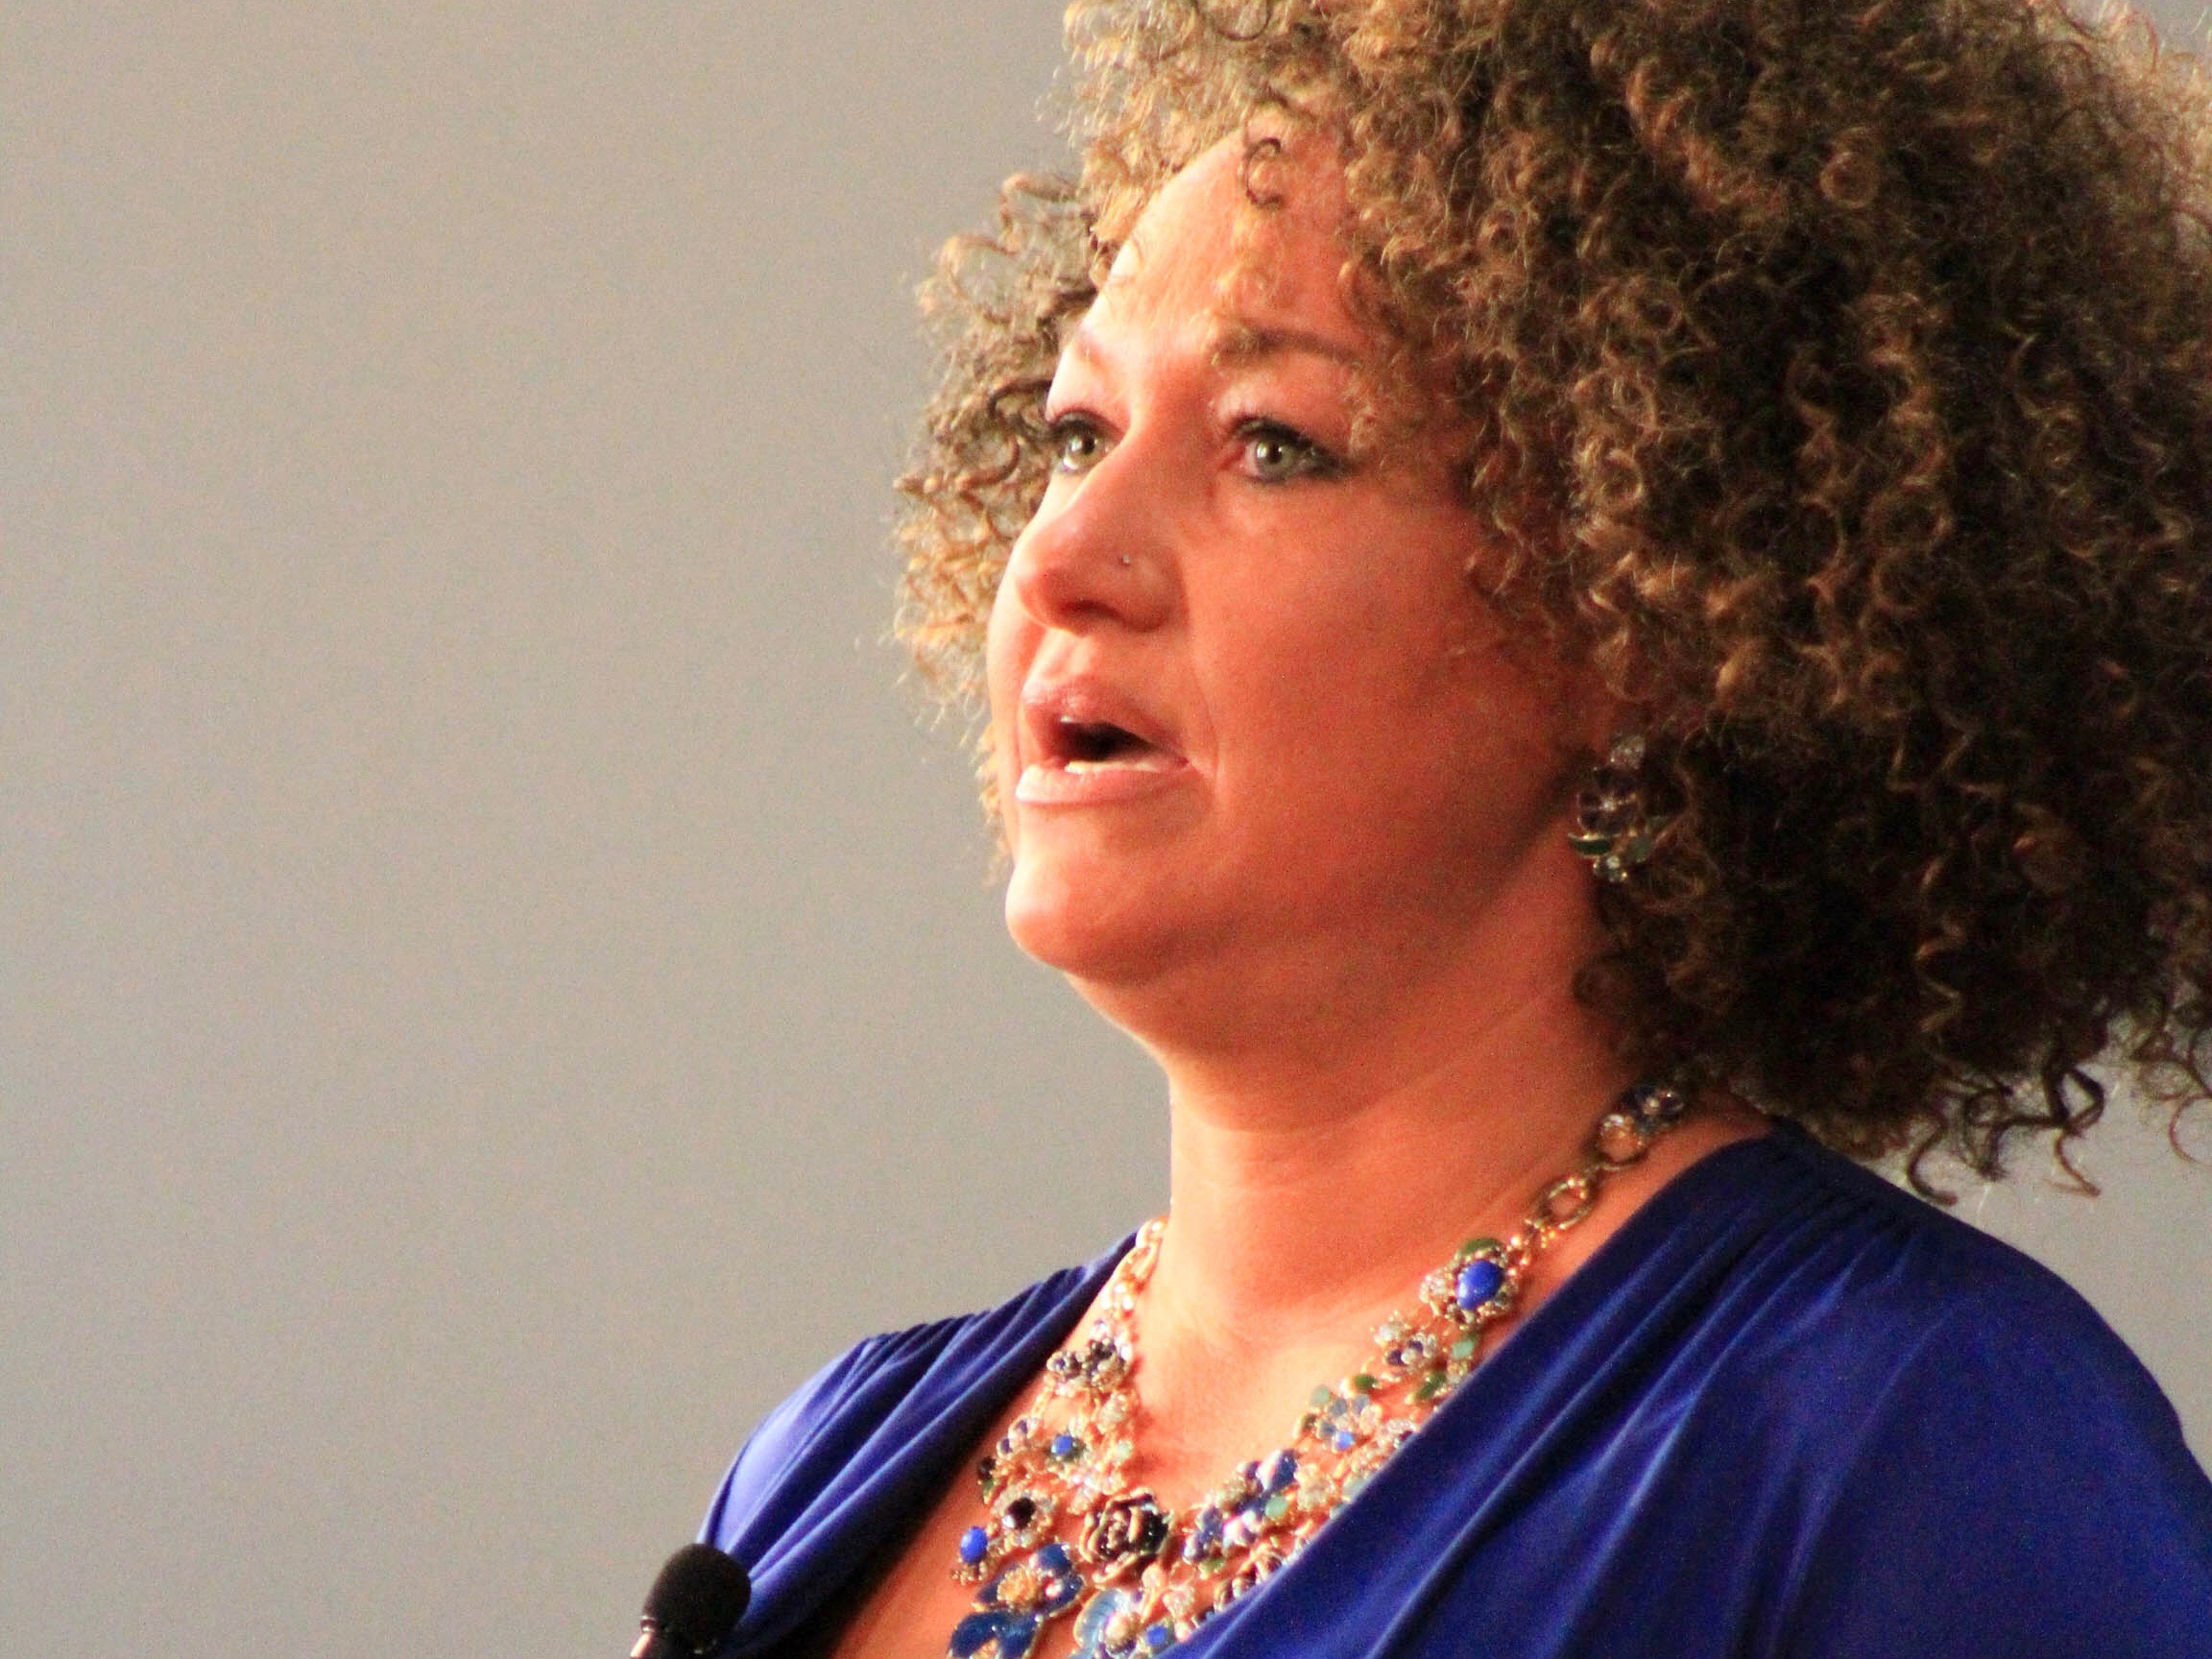 Tiffany Midge: I knew Rachel Dolezal back when she was indigenous